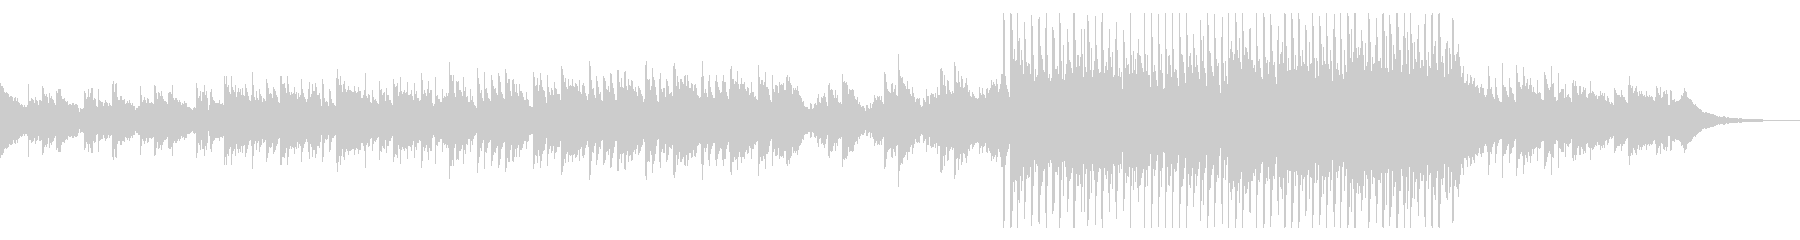 VP of IT technology company's unreproduced waveform